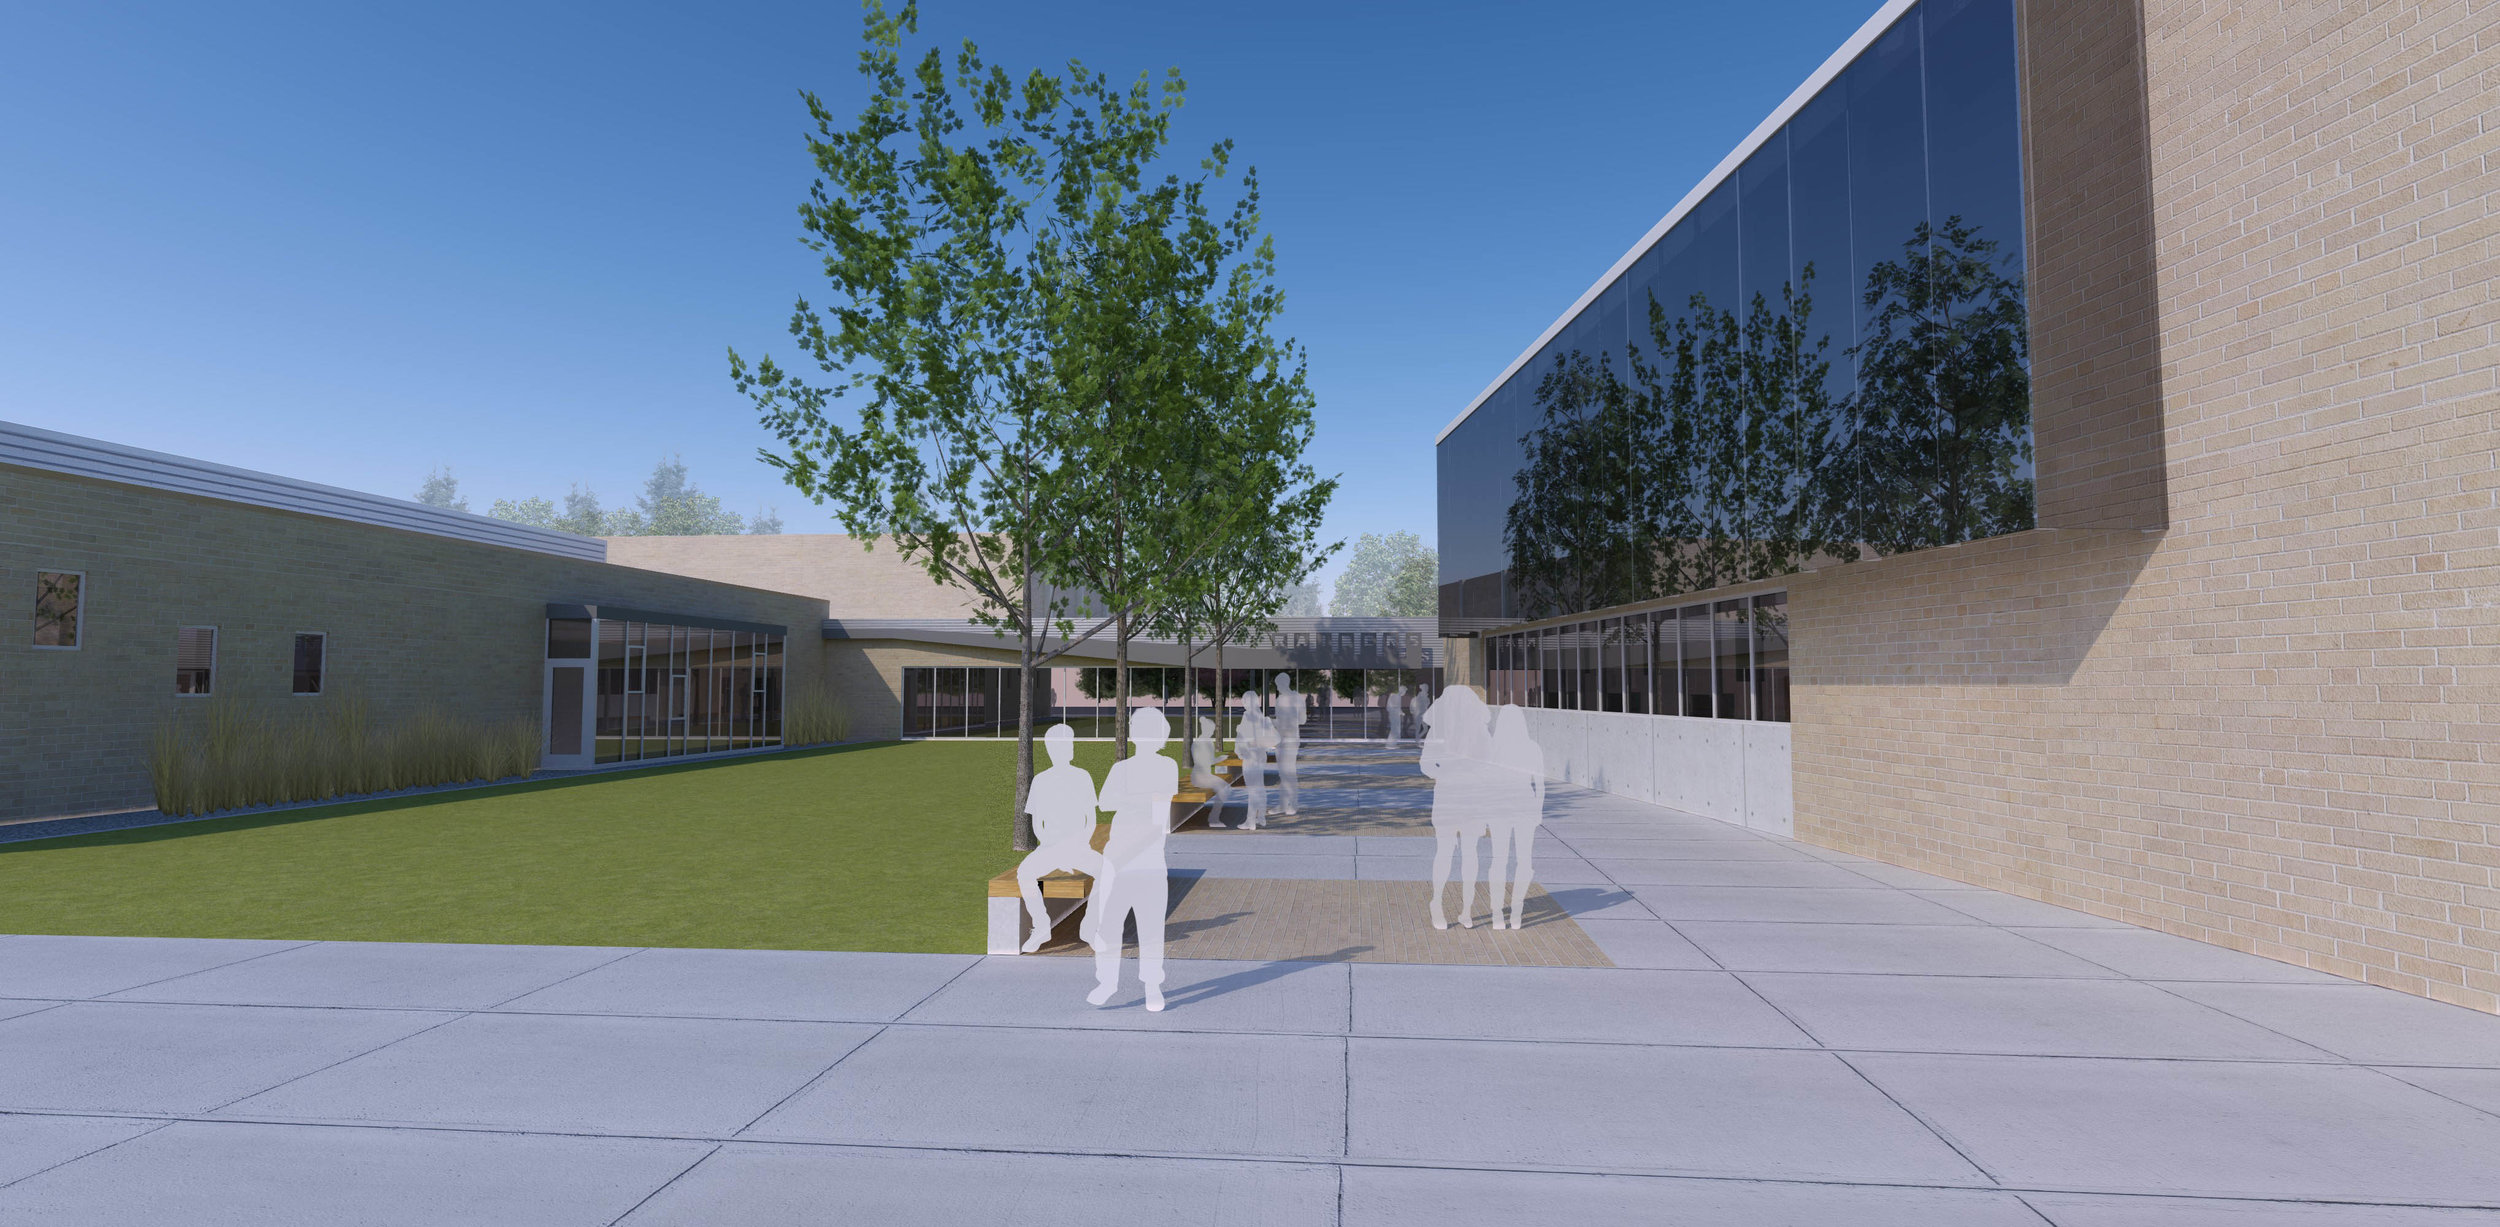 Courtyard View - Richardton-Taylor High School Addition and Renovation